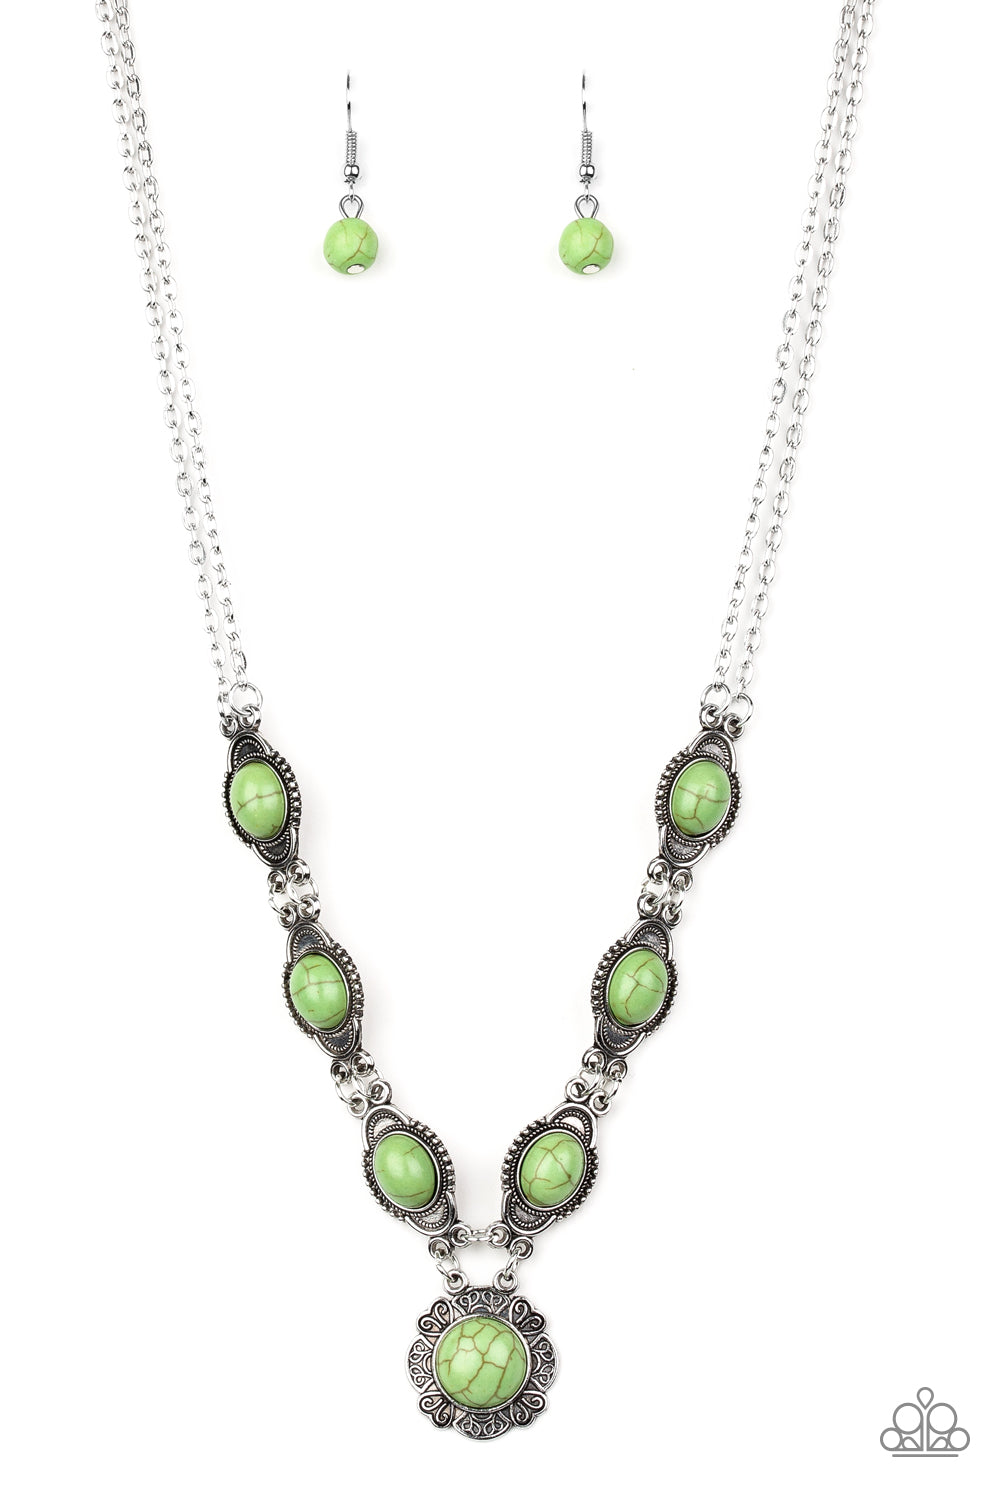 Desert Dreamin' - Green Pendant Necklace - The Paparazzi Fox